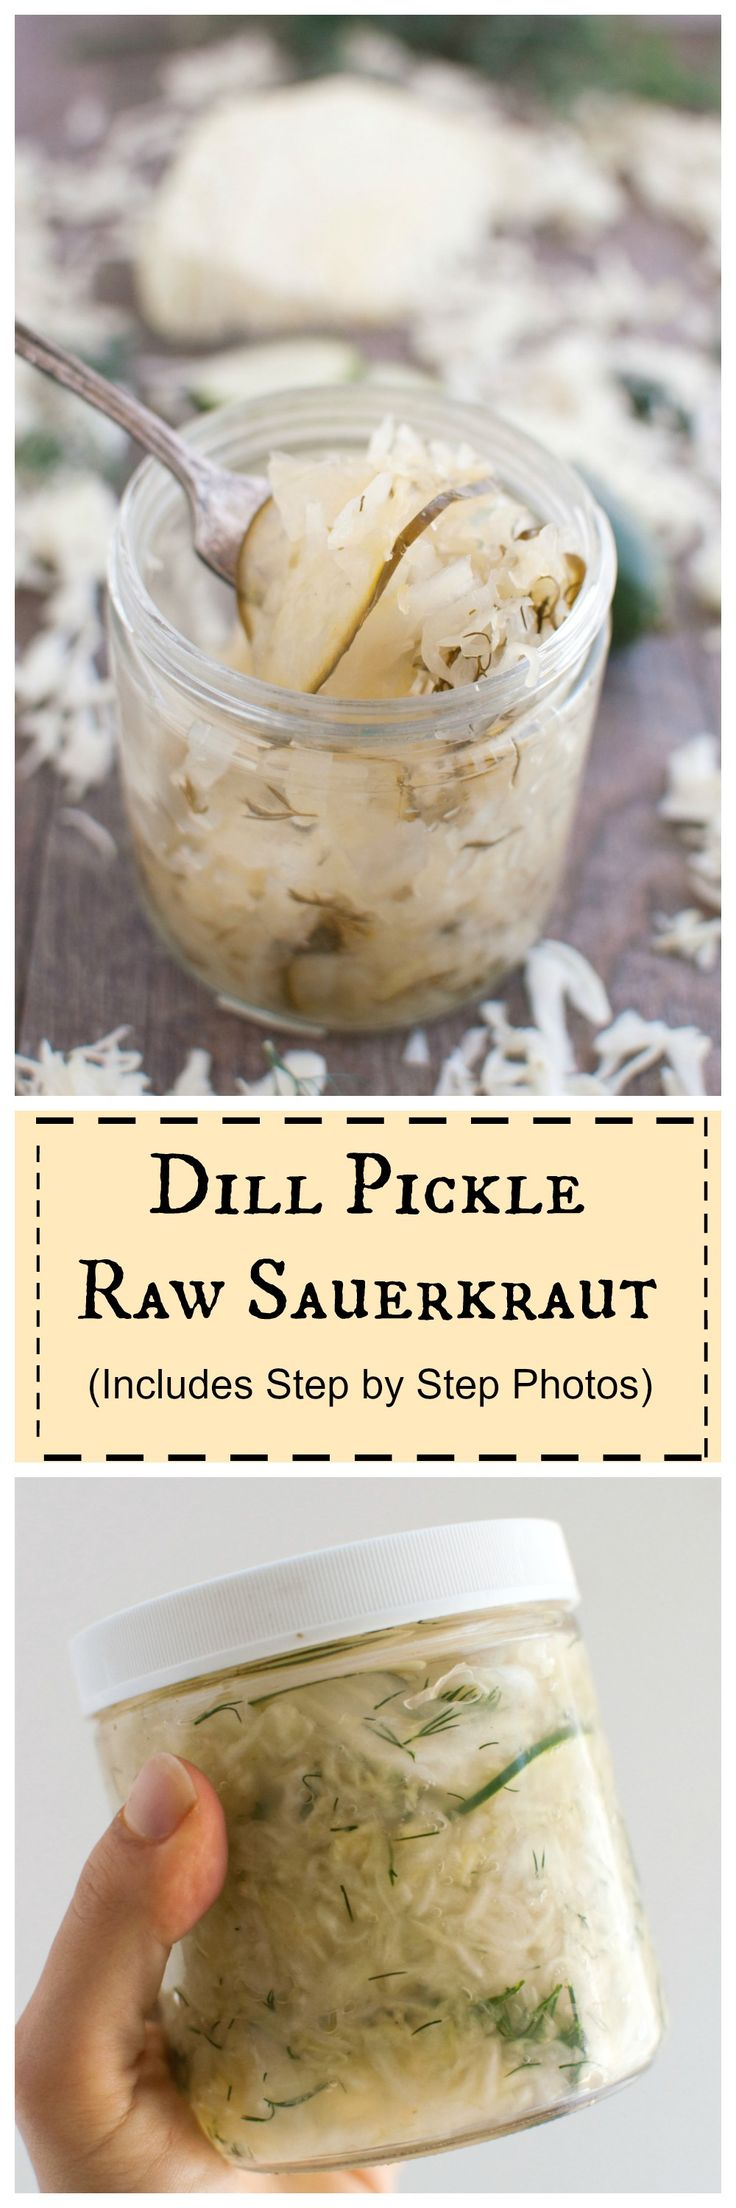 Dill Pickle Raw Sauerkraut- improve your gut heal #probiotic #vegan #paleo…                                                                                                                                                                                 More